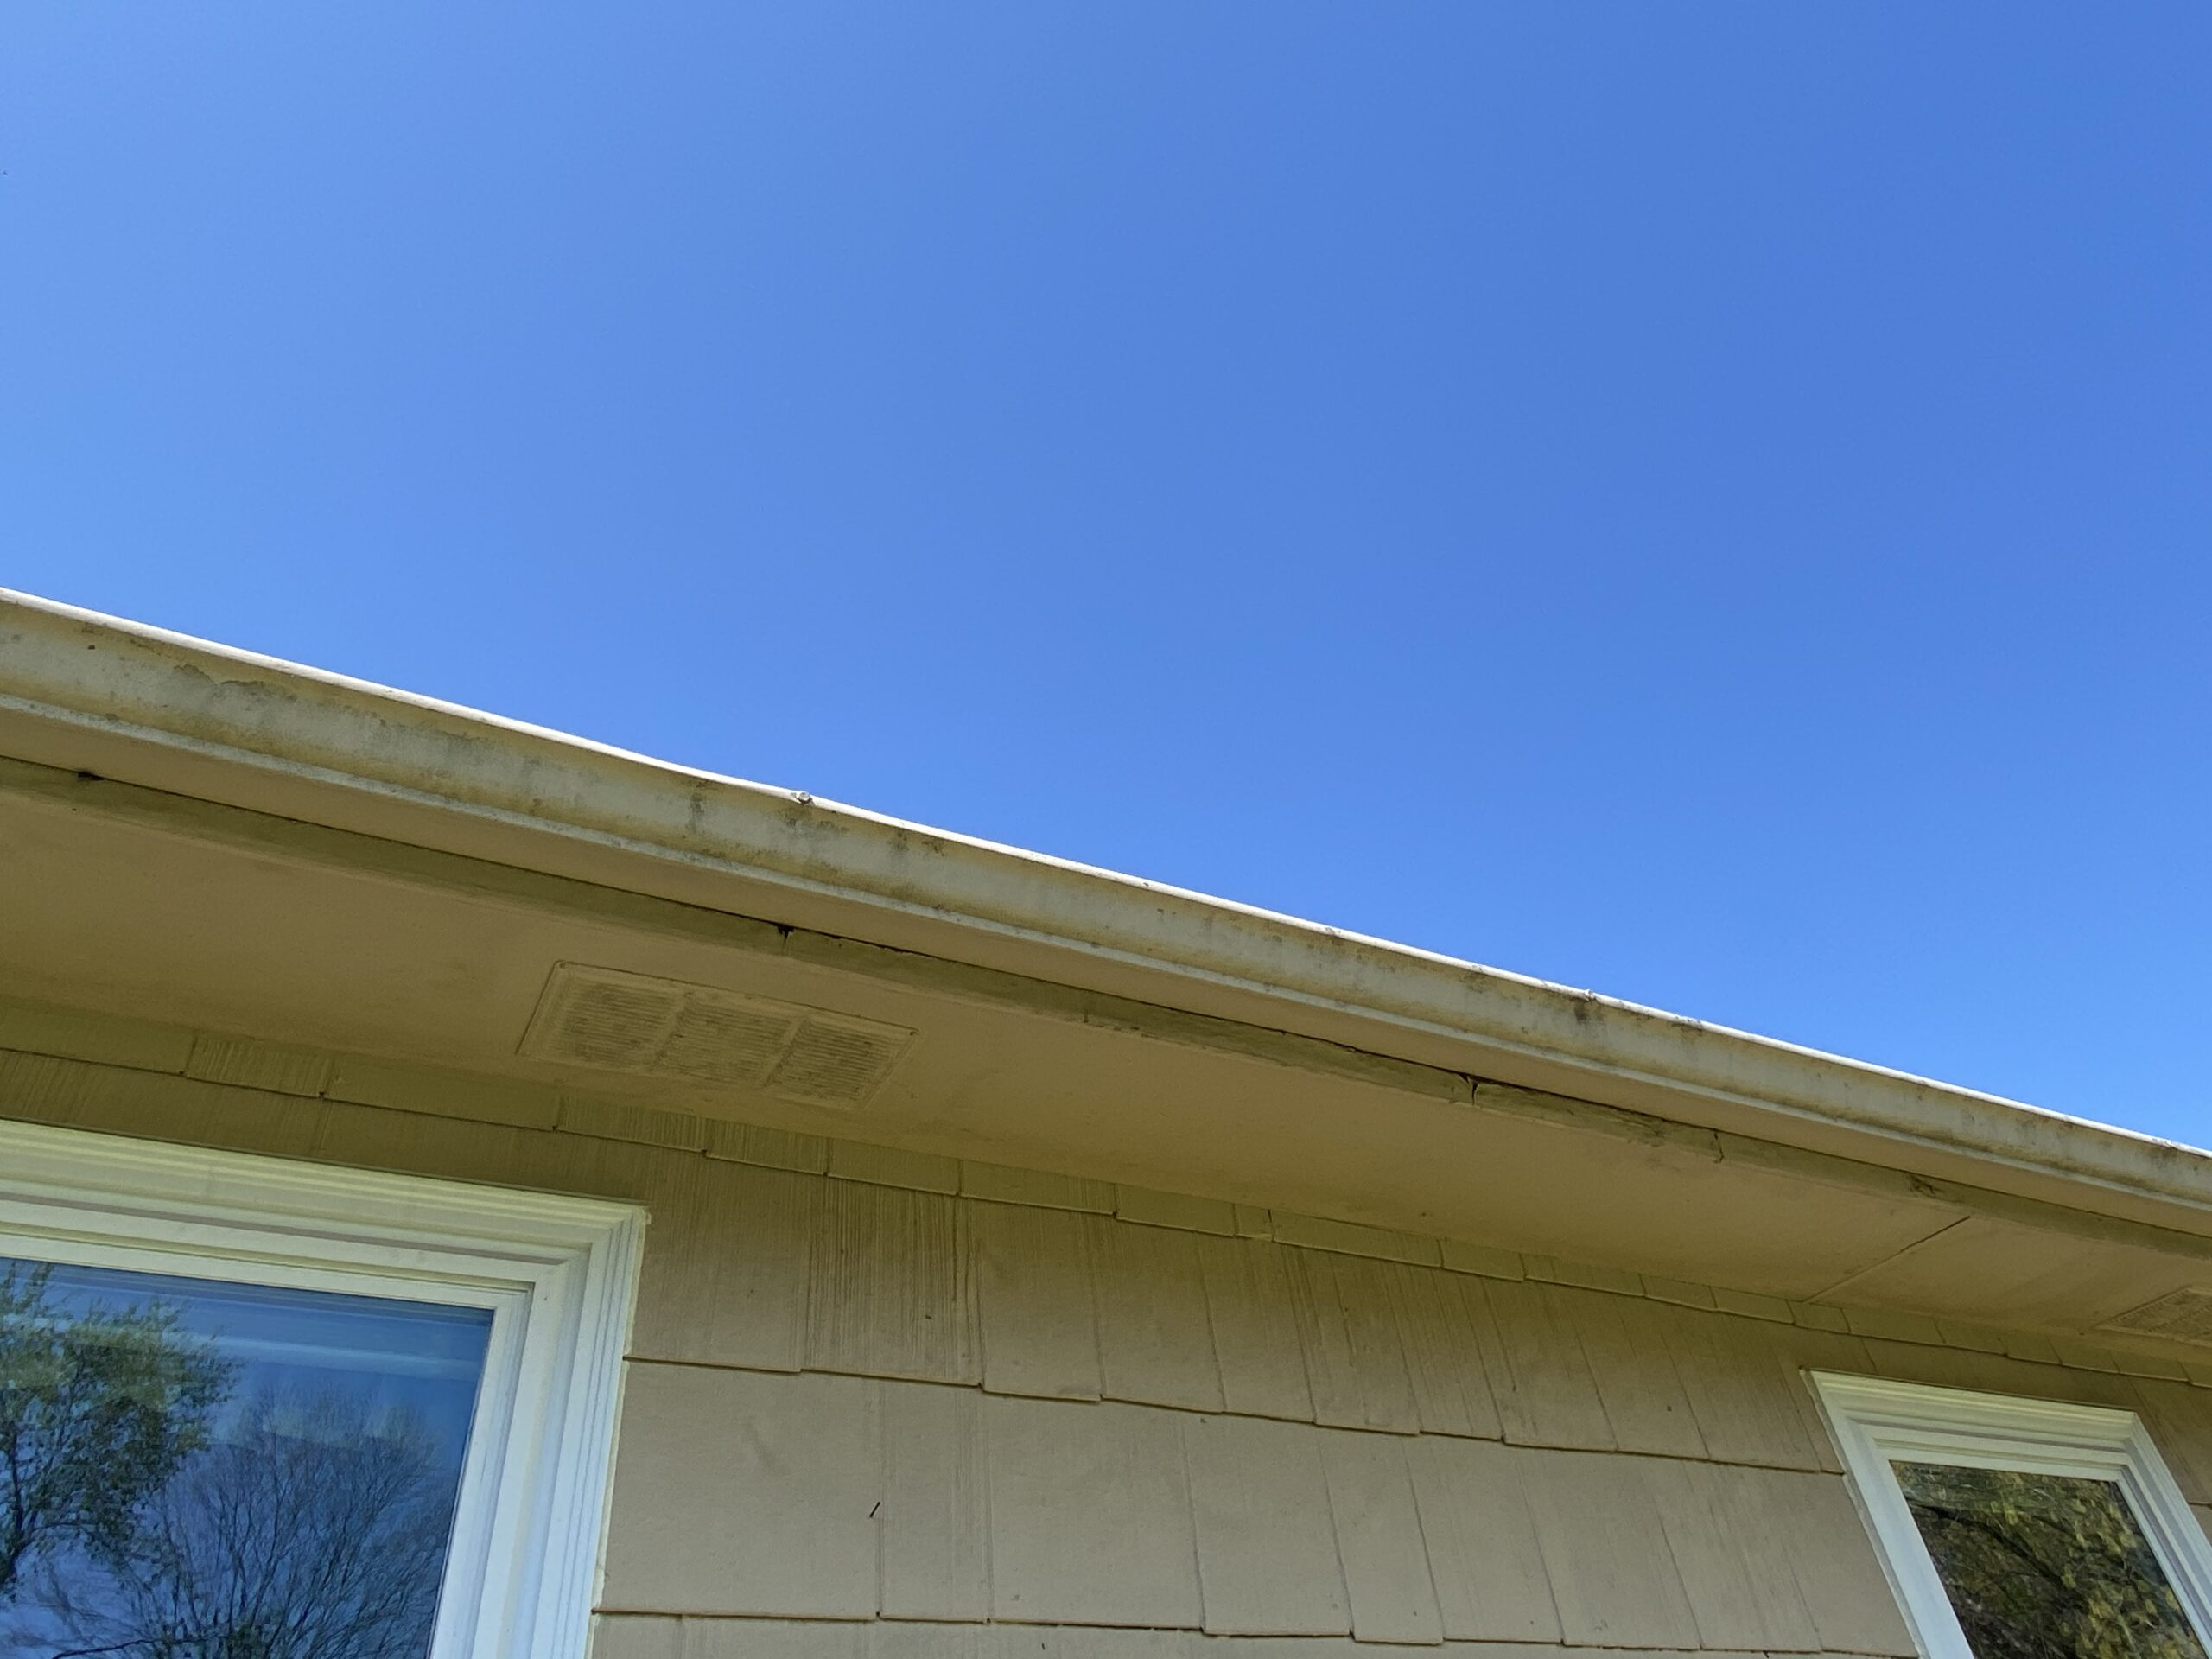 This is a picture of an old tan colored gutter